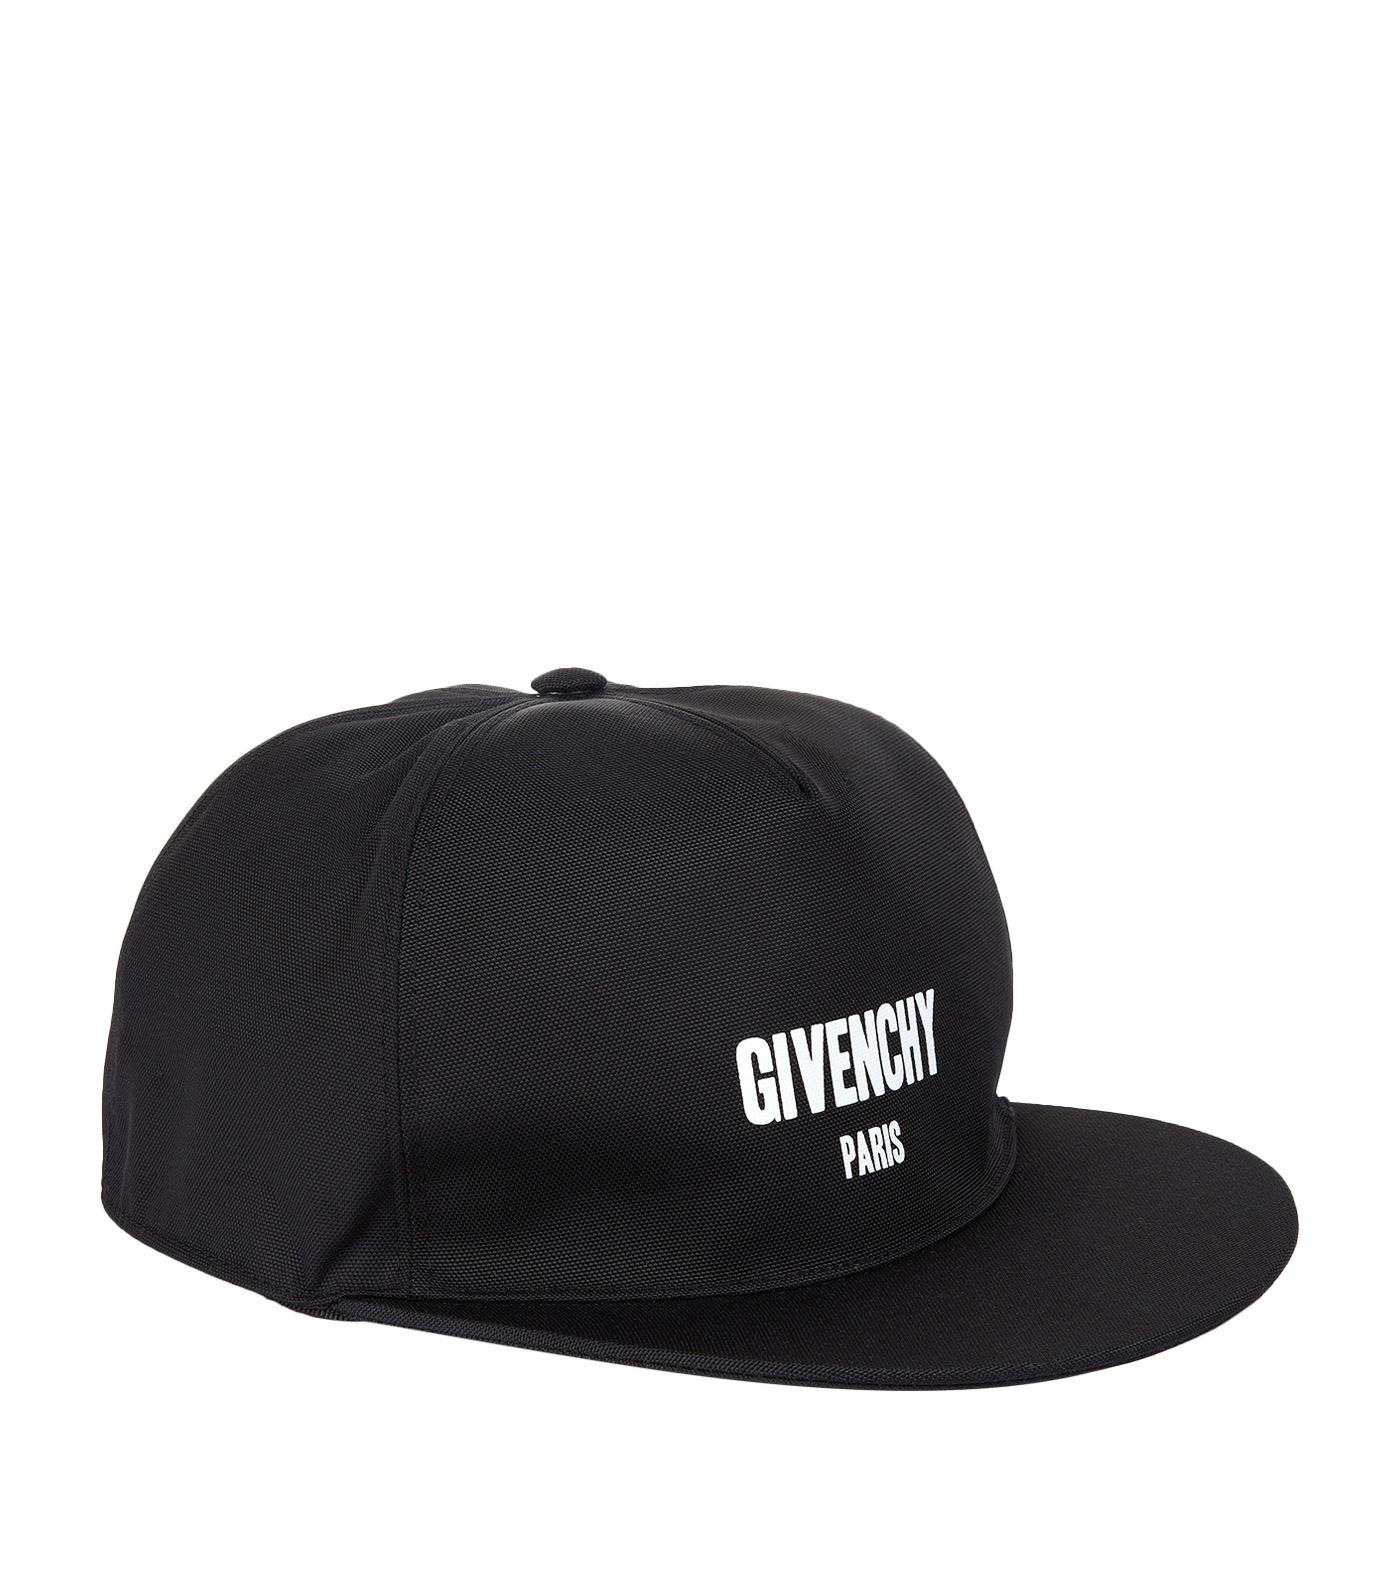 a2a4ab41c23 Lyst - Givenchy Logo Cap in Black for Men